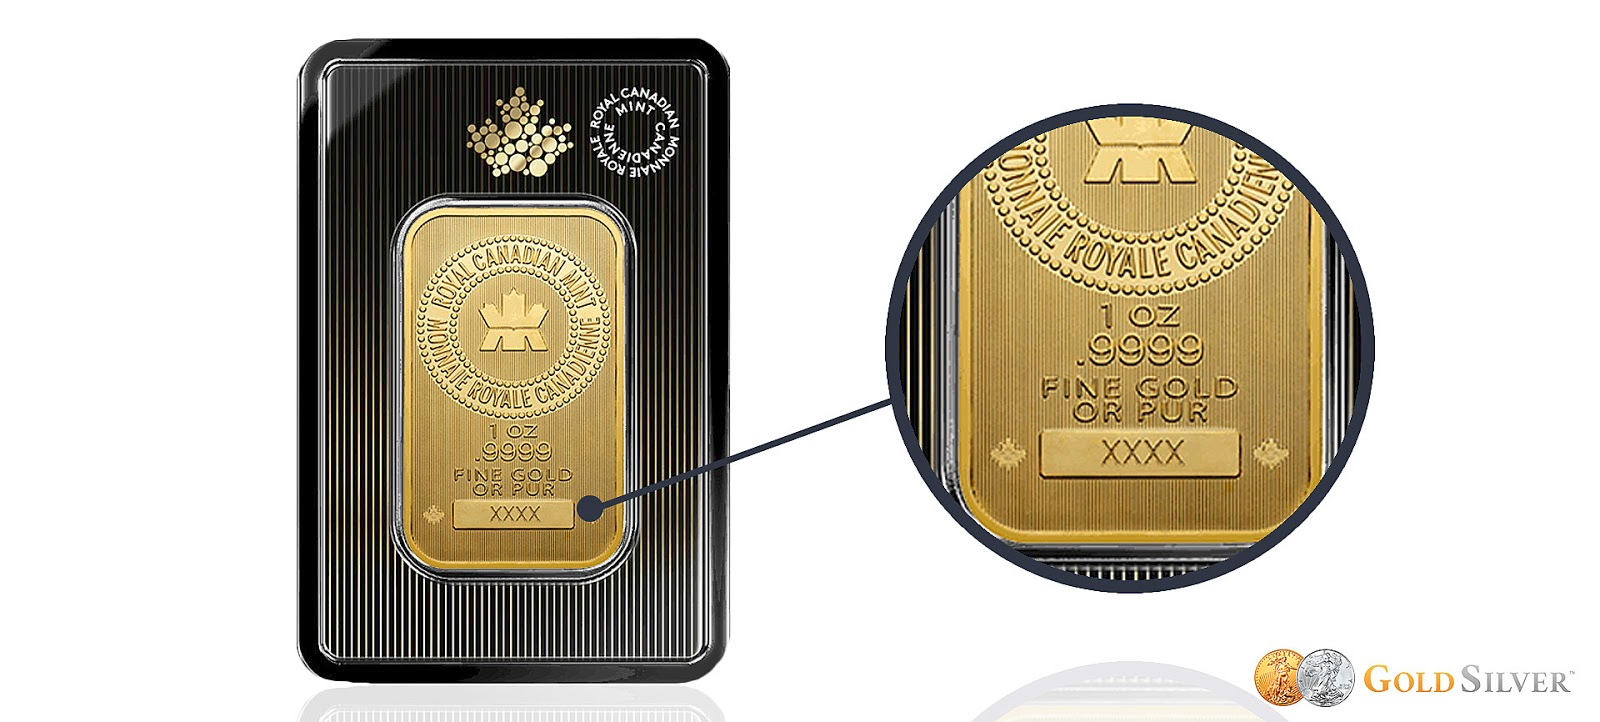 Stamping on a royal canadian mint gold bar